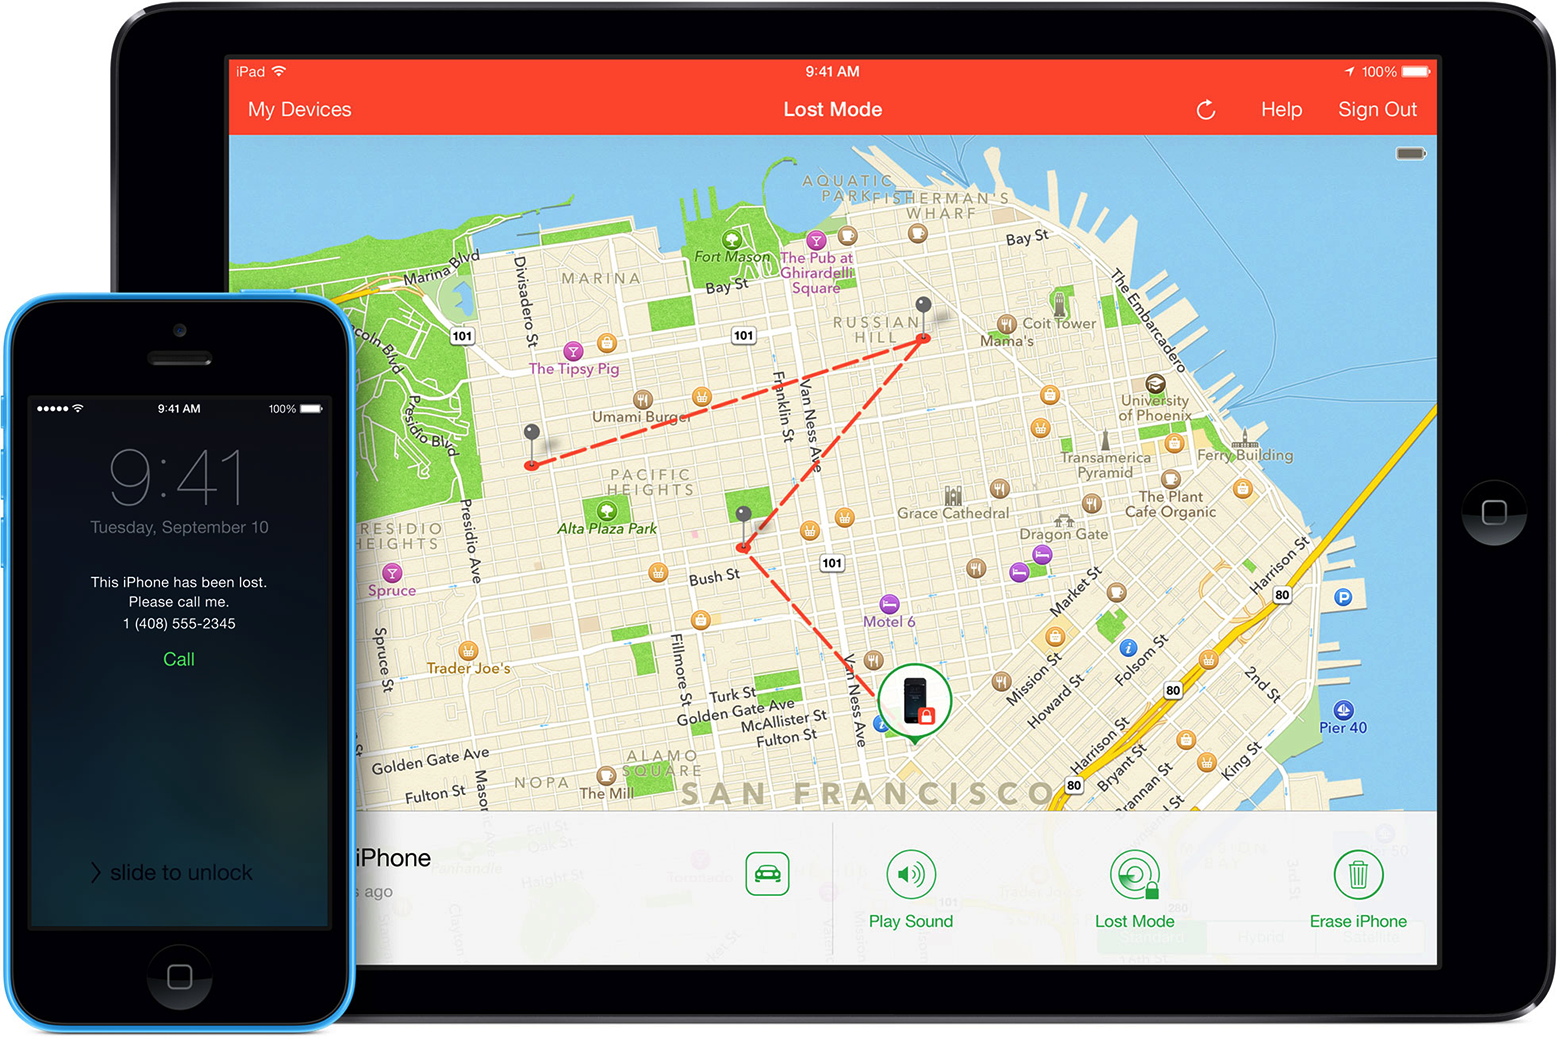 How to find your iPhone, iPad, or iPod touch if it is lost or stolen